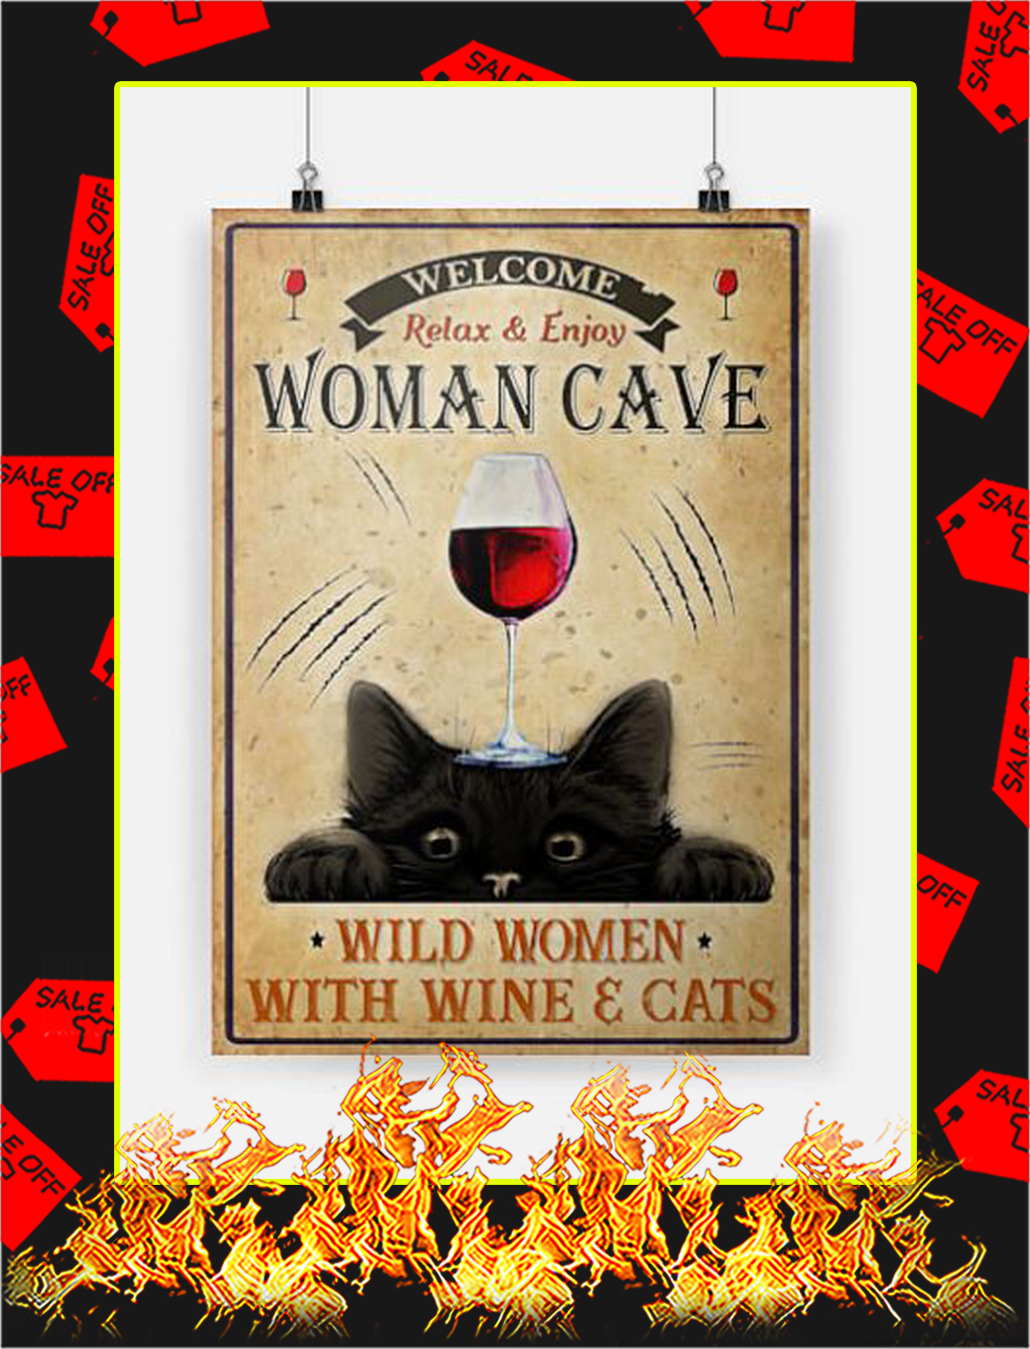 Wine and cats welcome relax and enjoy woman cave poster - A2